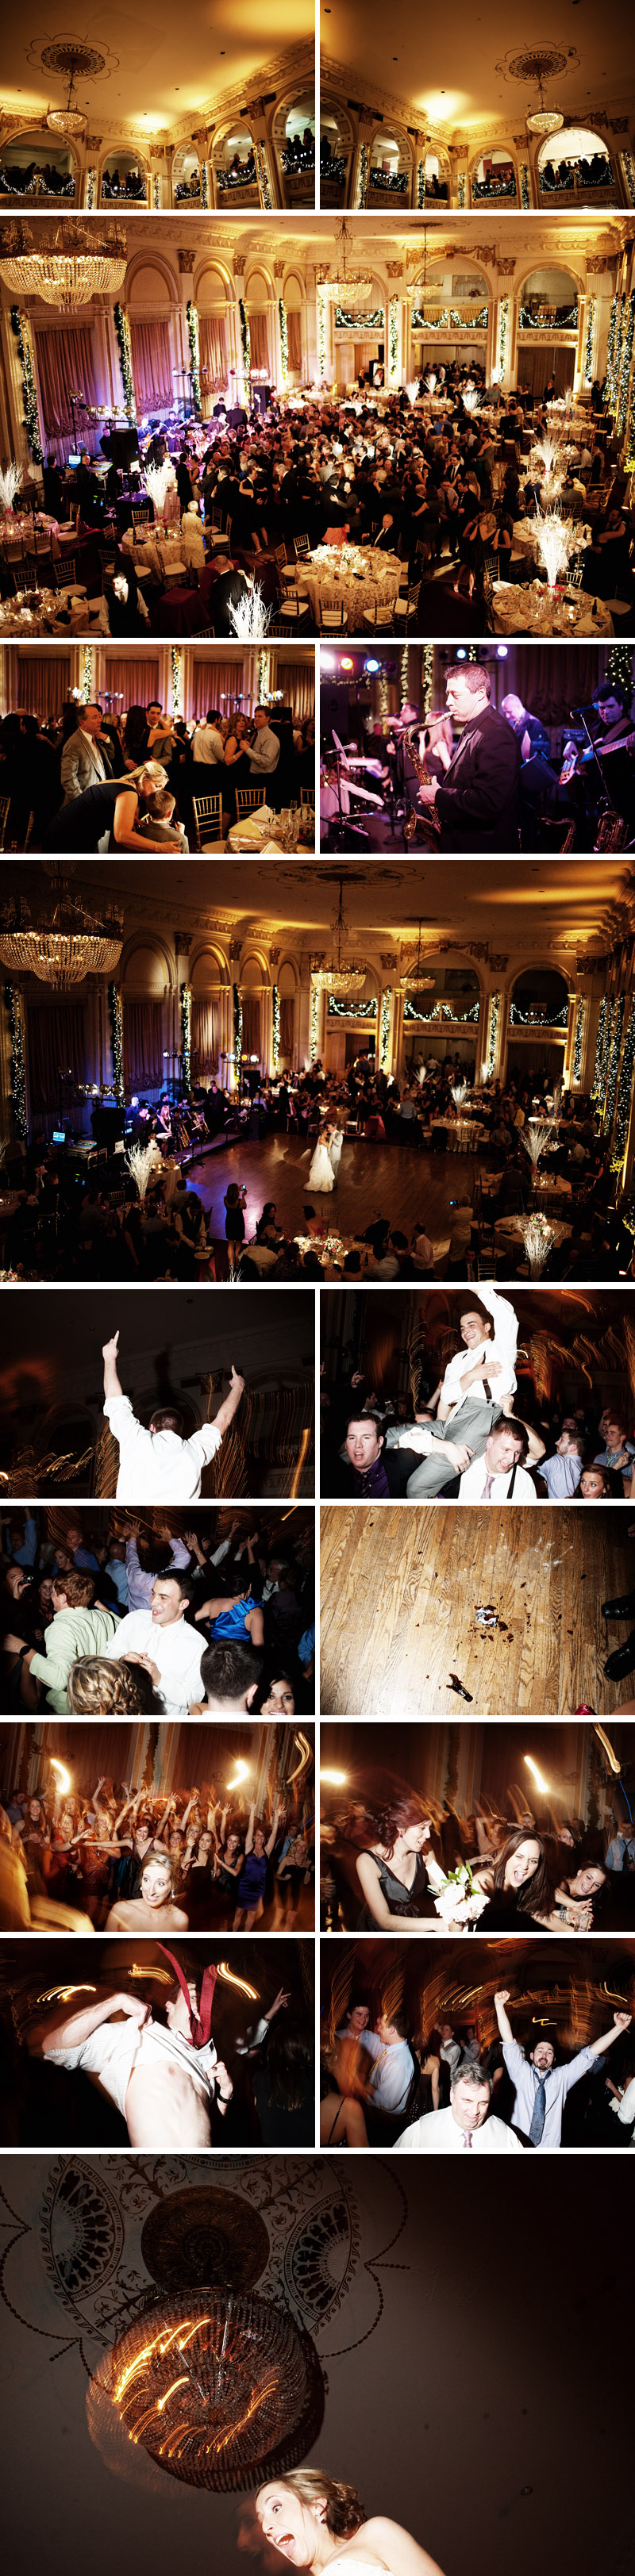 ballroom at the ben wedding in philadelphia photographed by michael ash imagery